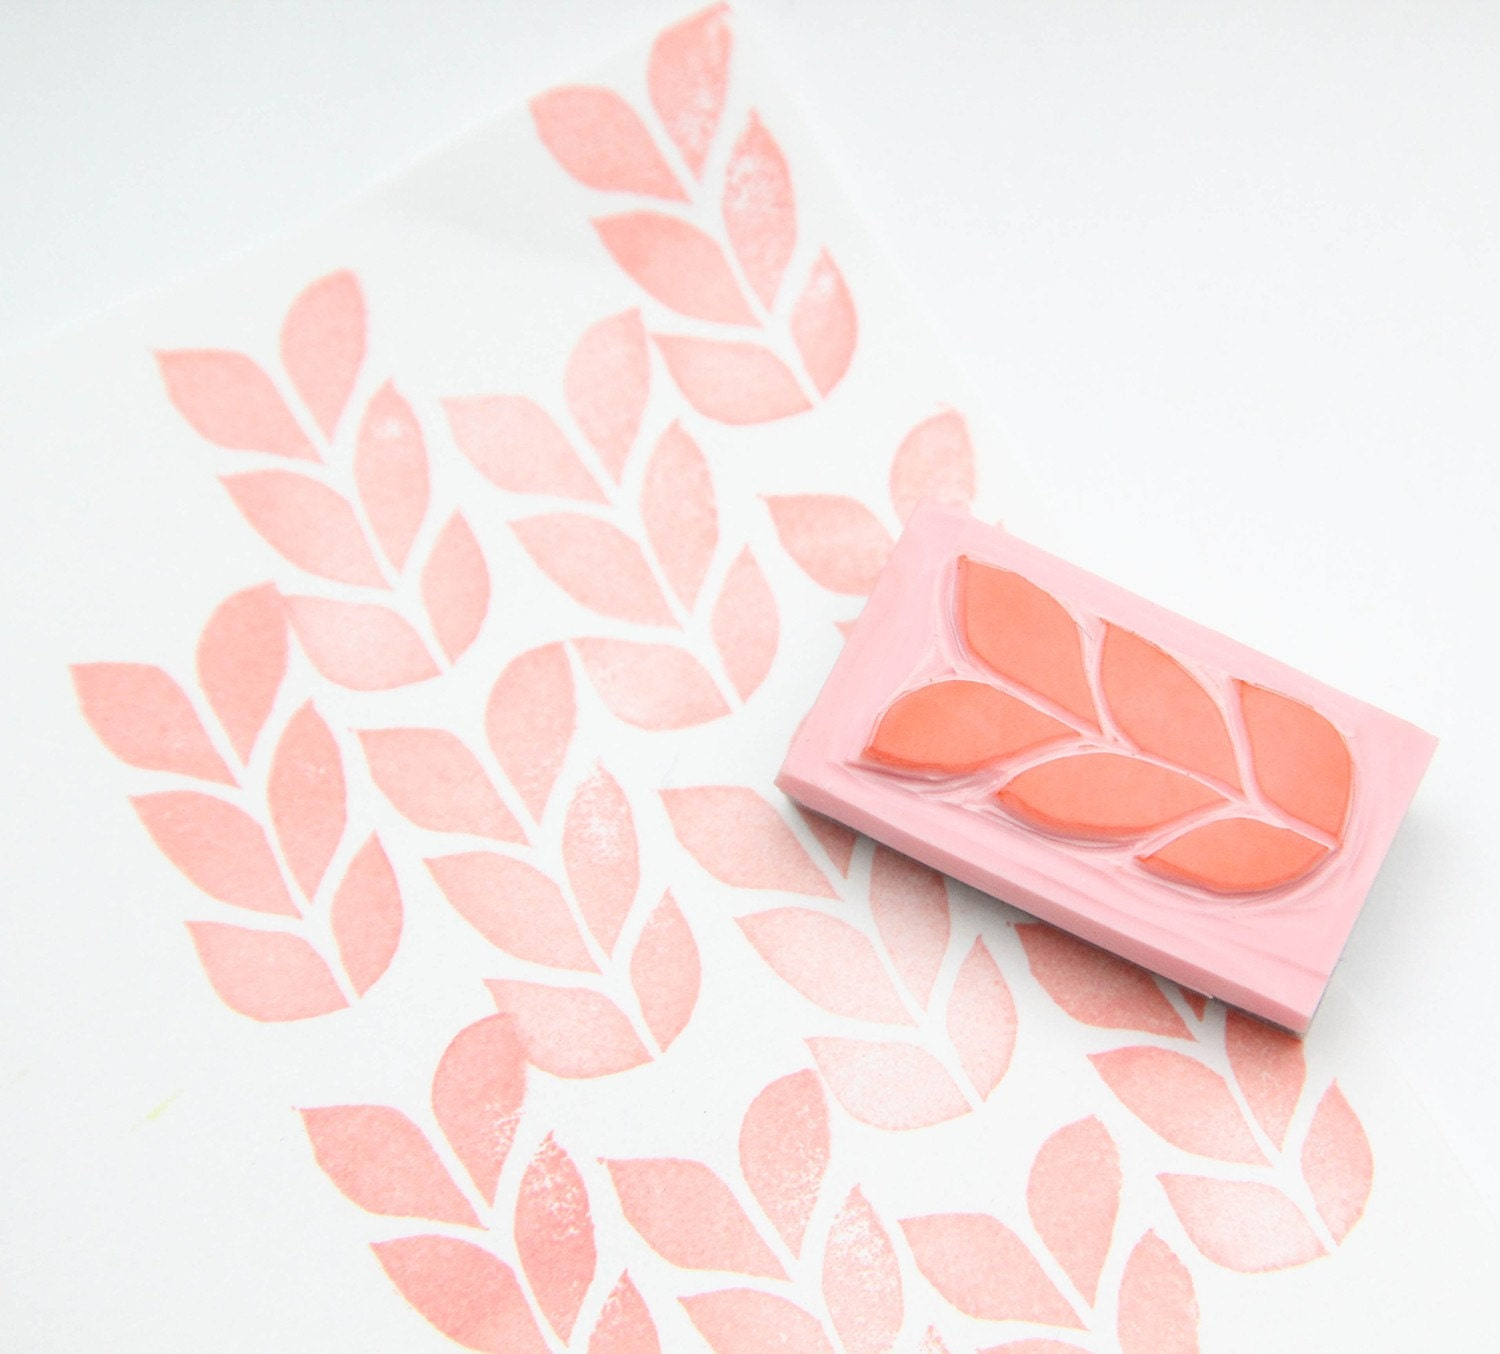 Knit hand carved rubber stamp for acrylic blocks